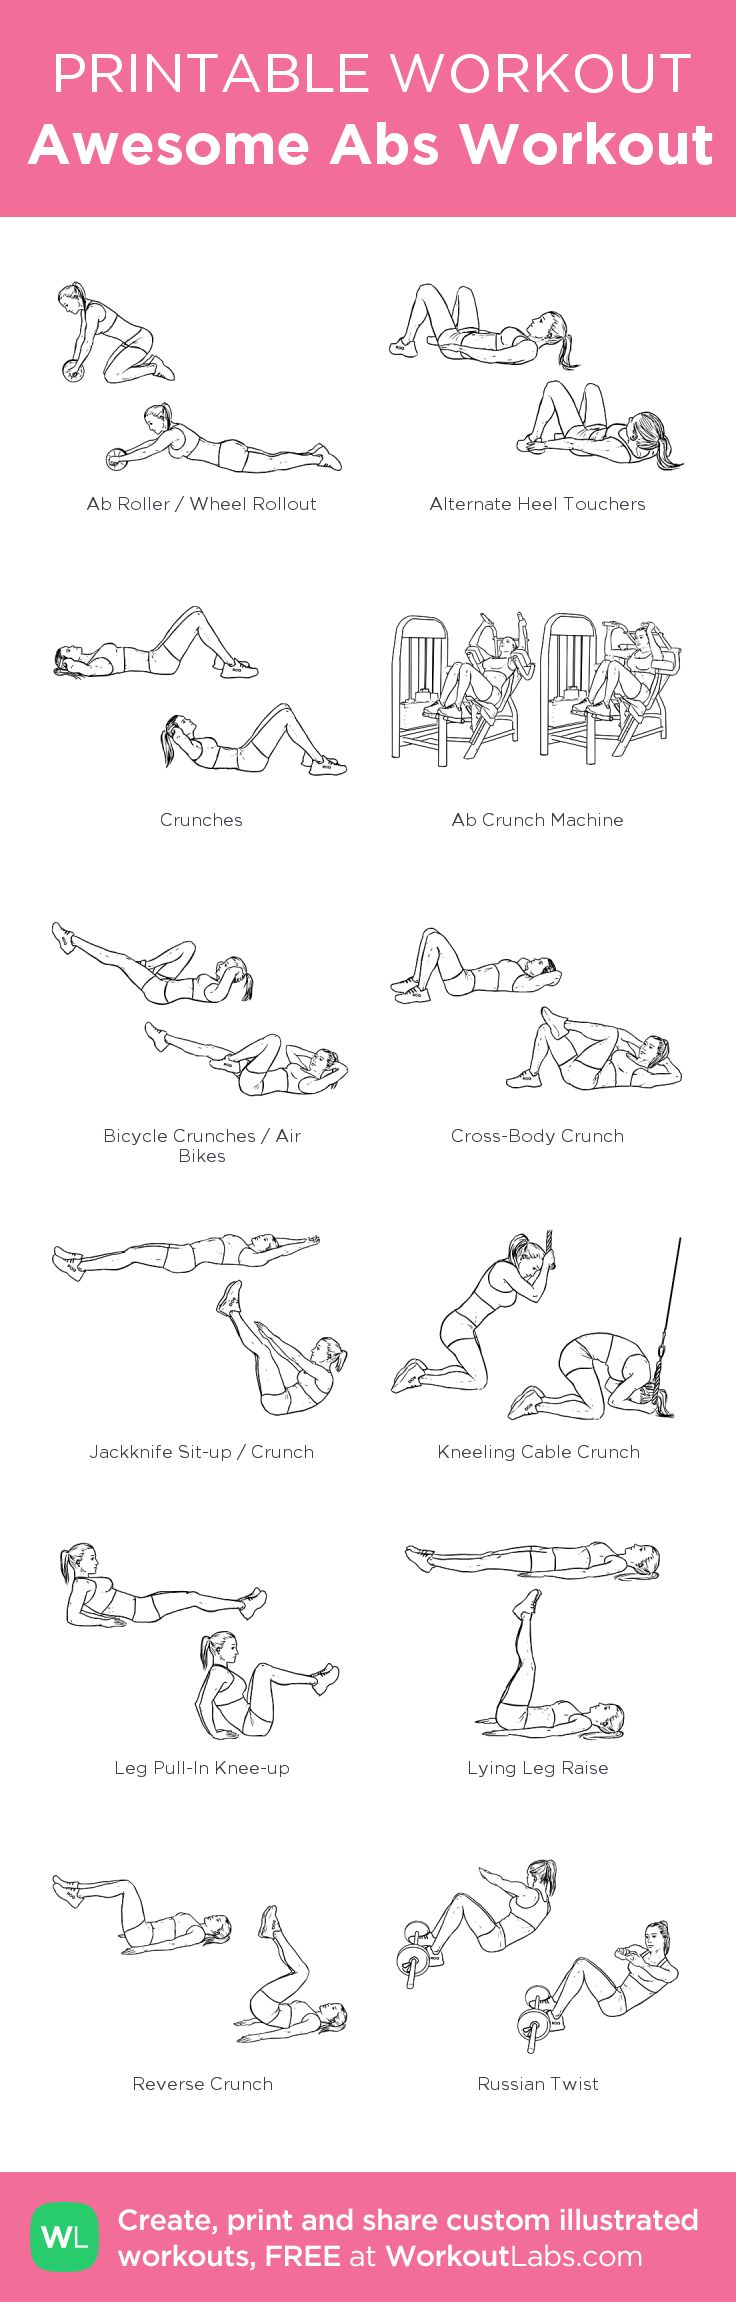 Awesome Abs Workout – my custom workout created at WorkoutLabs.com • Click through to download as printable PDF! #customworkout